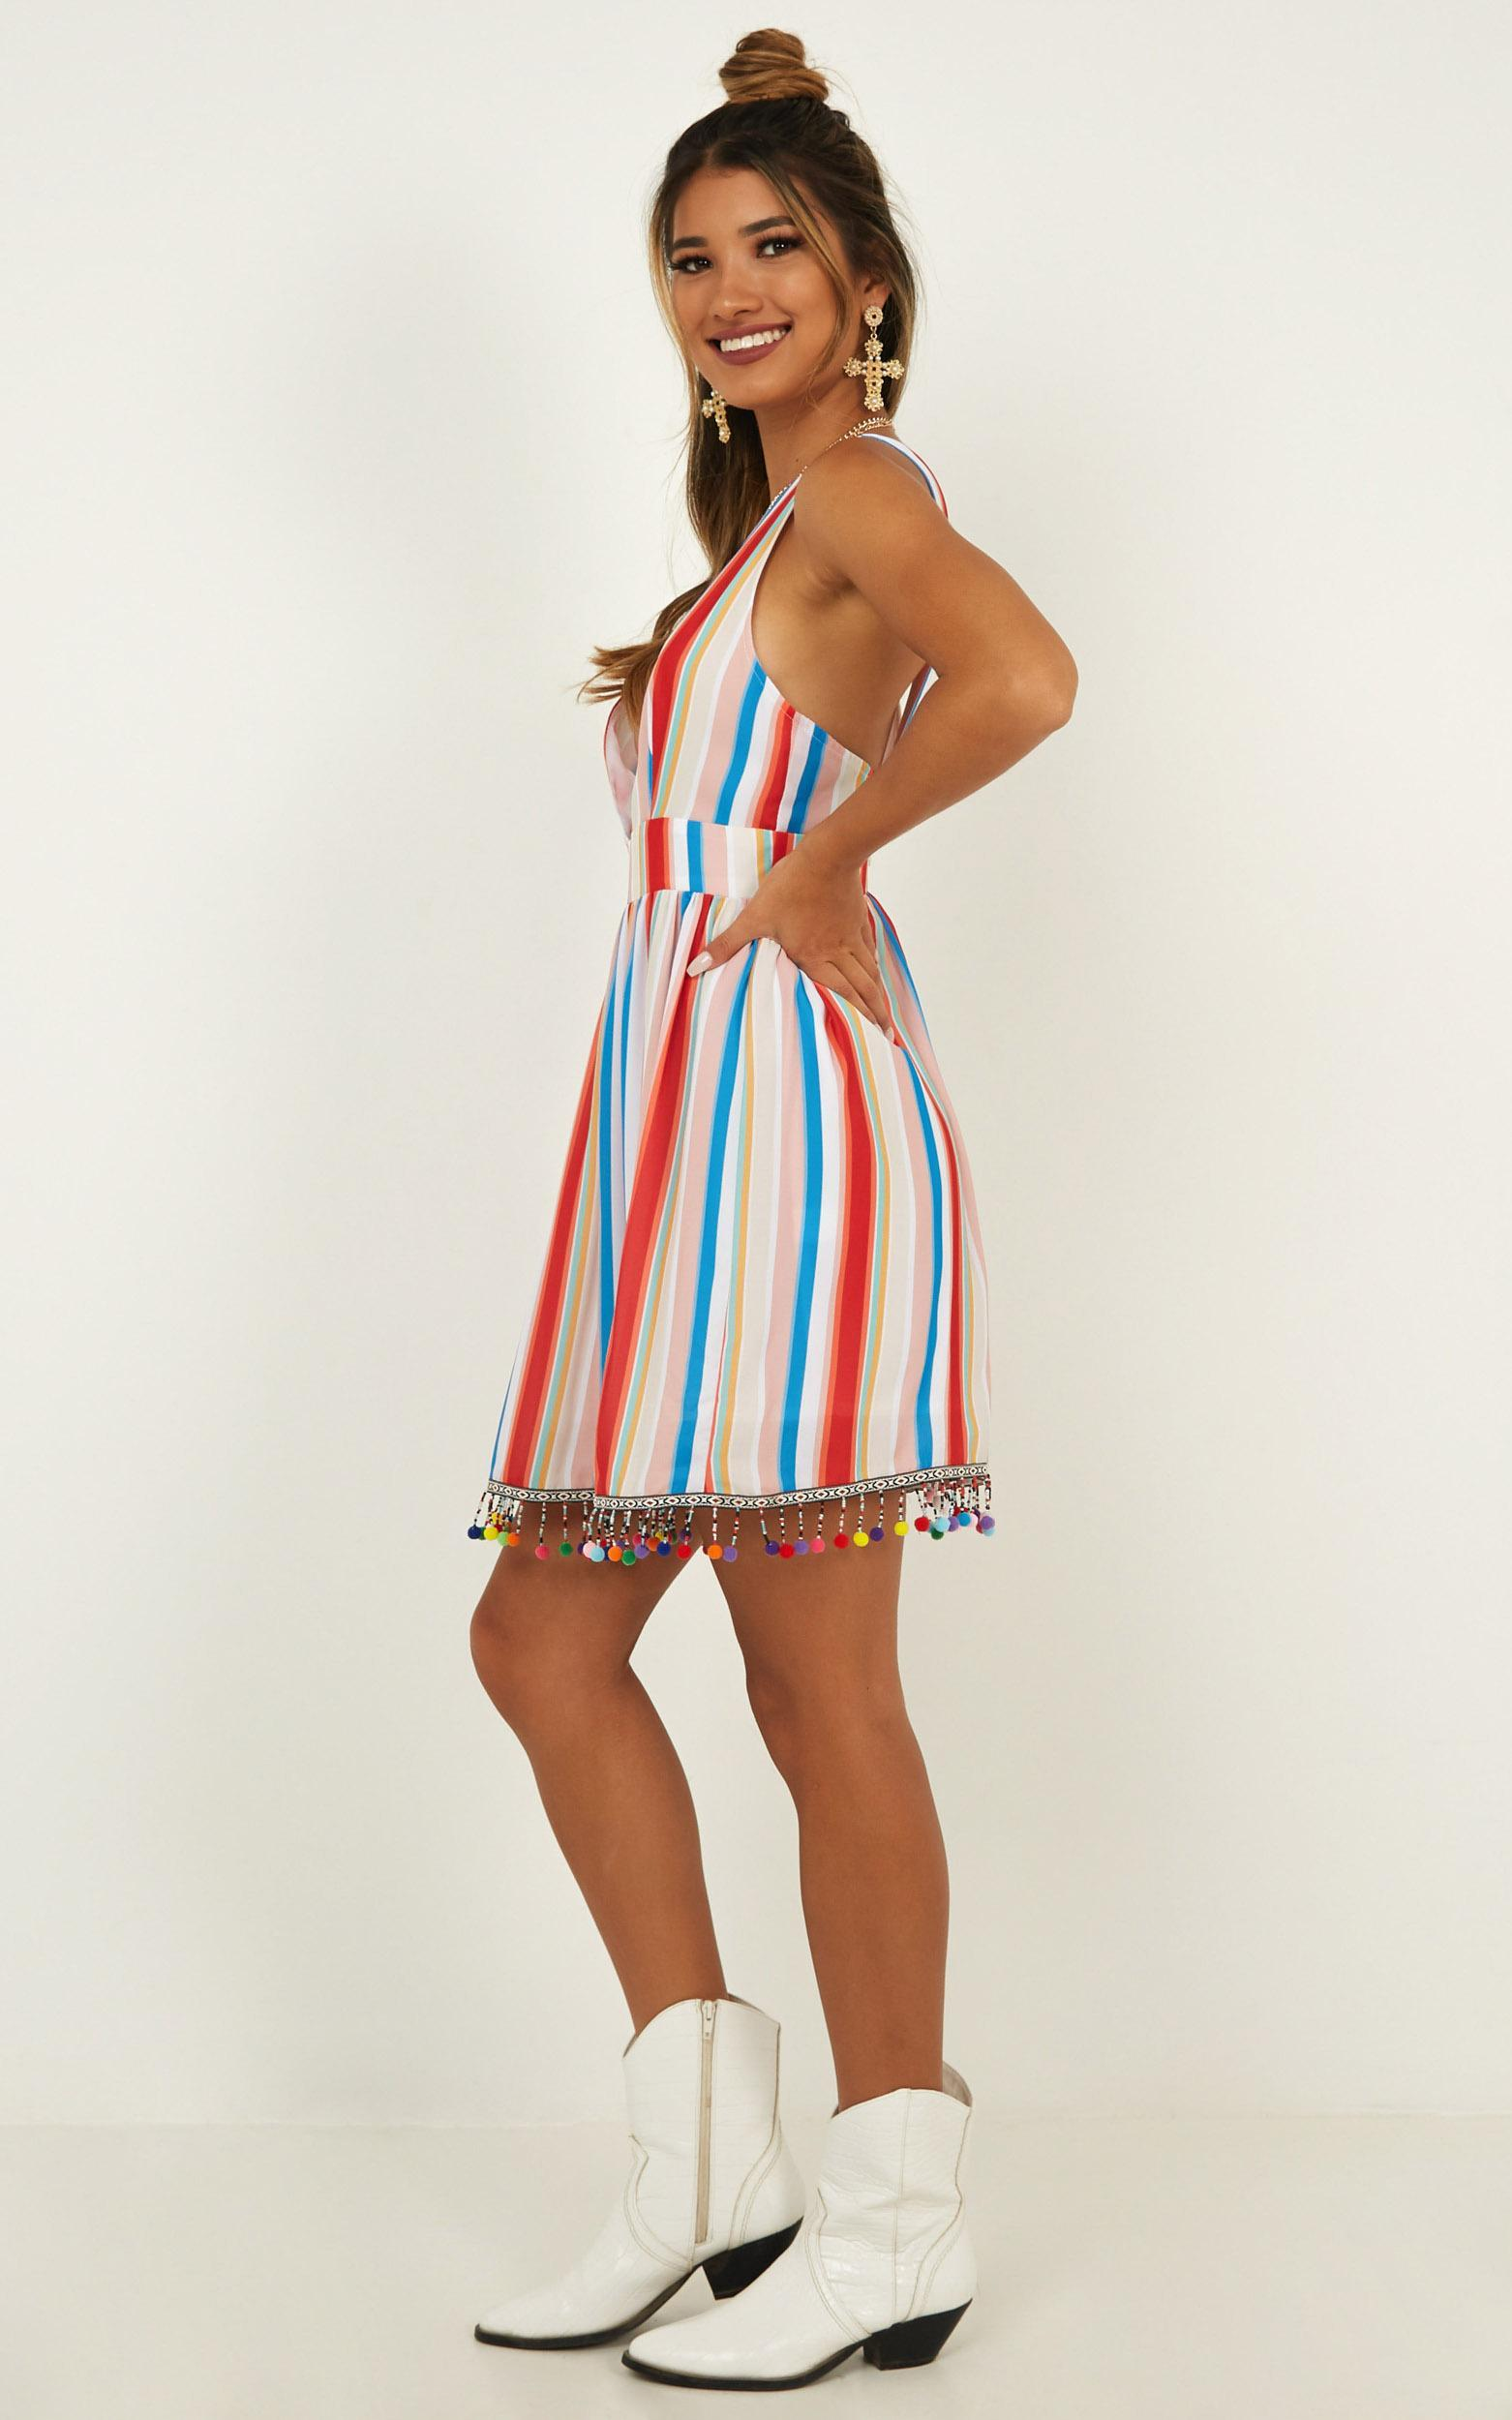 Surrender To The Night Dress in rainbow stripe - 20 (XXXXL), Beige, hi-res image number null